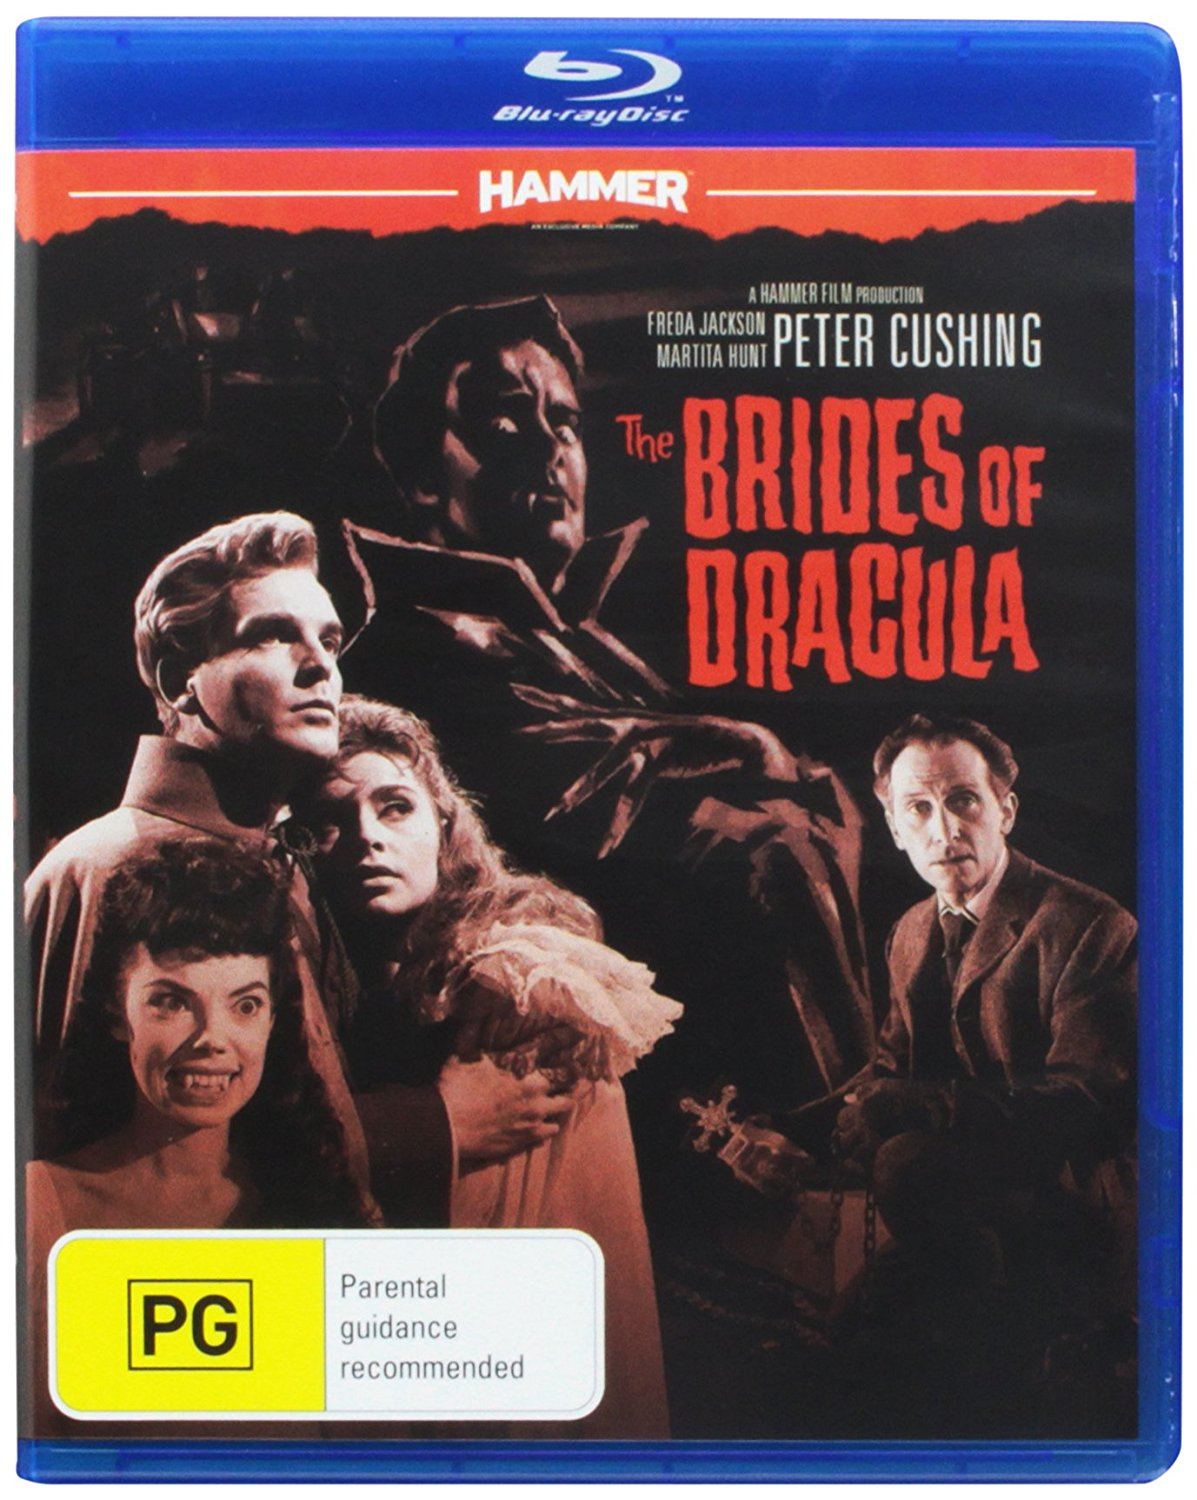 The Brides of Dracula (1960) starring Peter Cushing, David Peel, Martita Hunt, Yvonne Monlaur